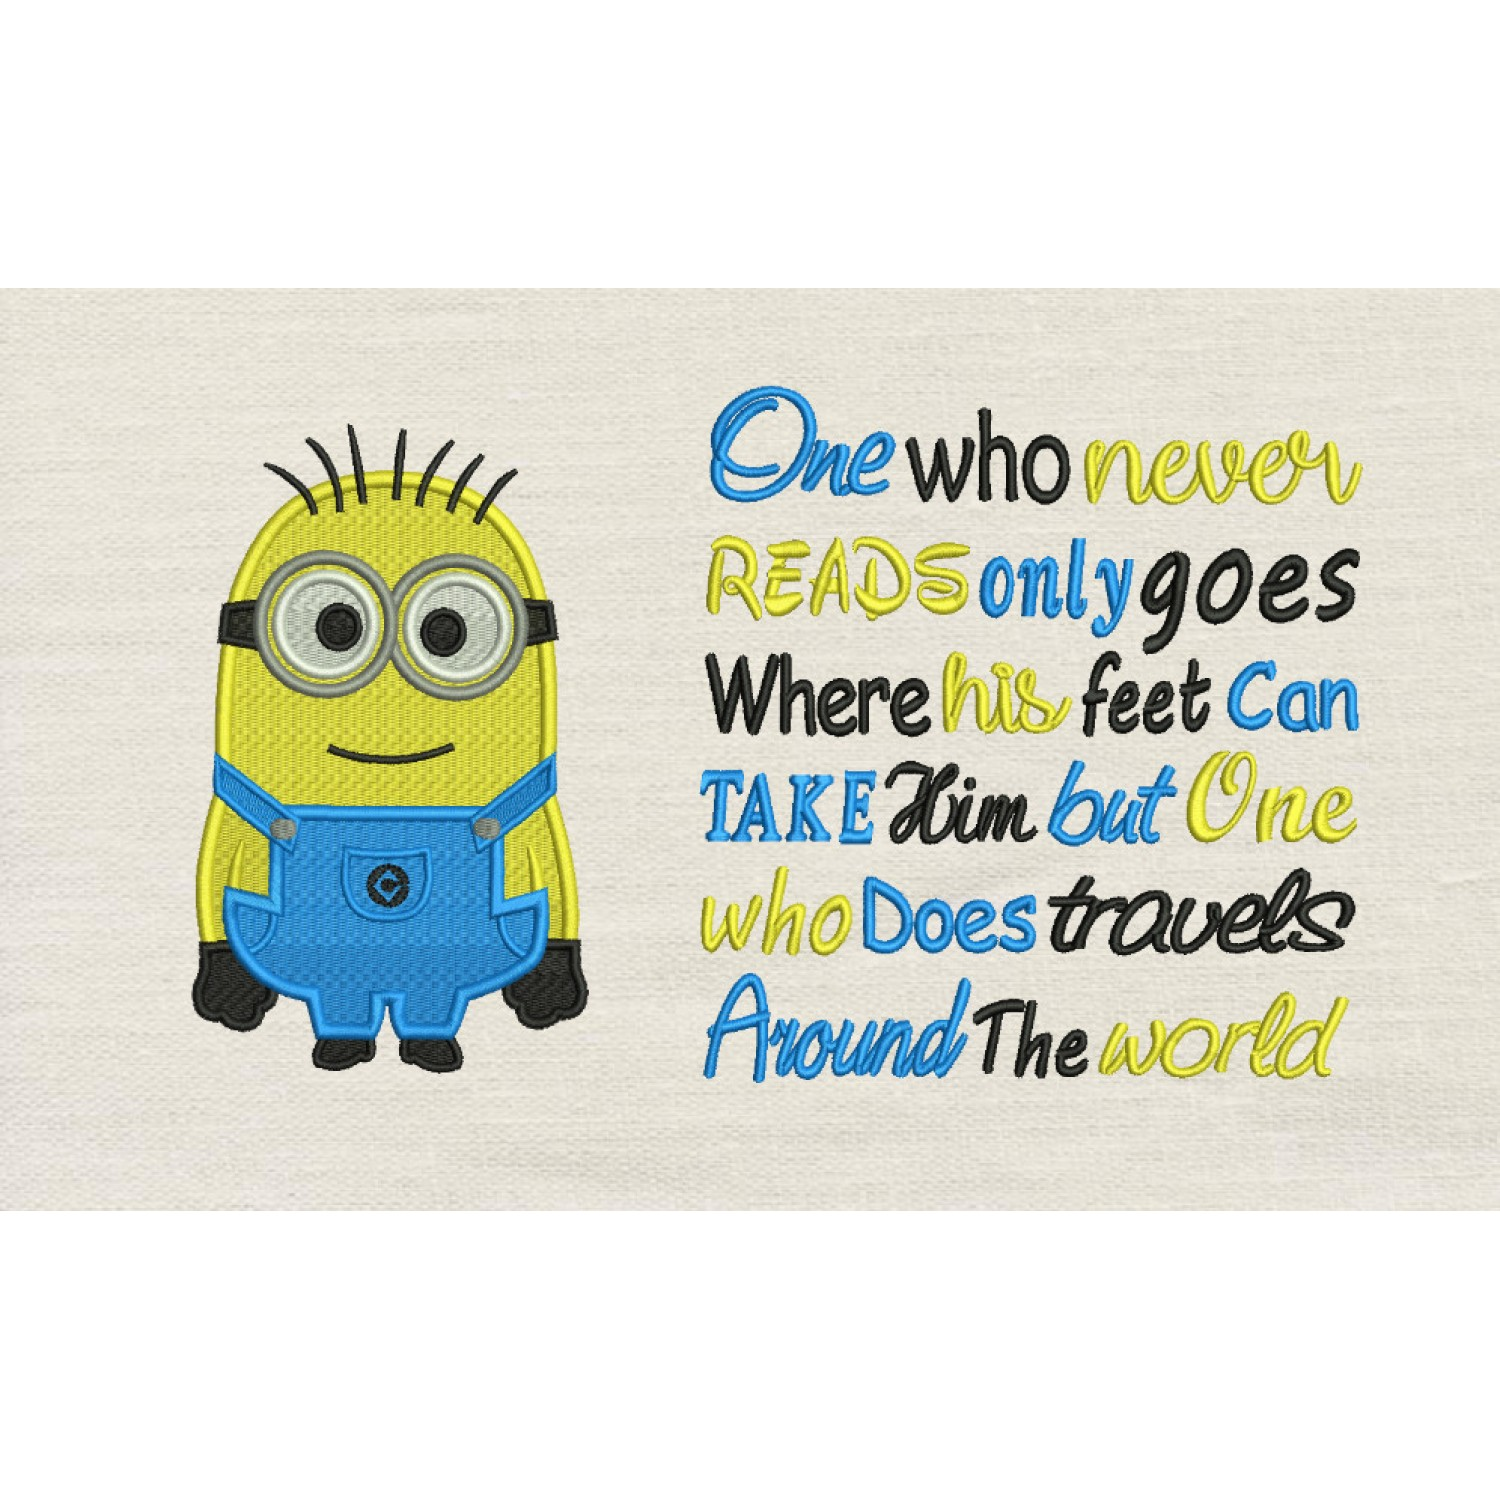 Bob minion embroidery with One who never reads